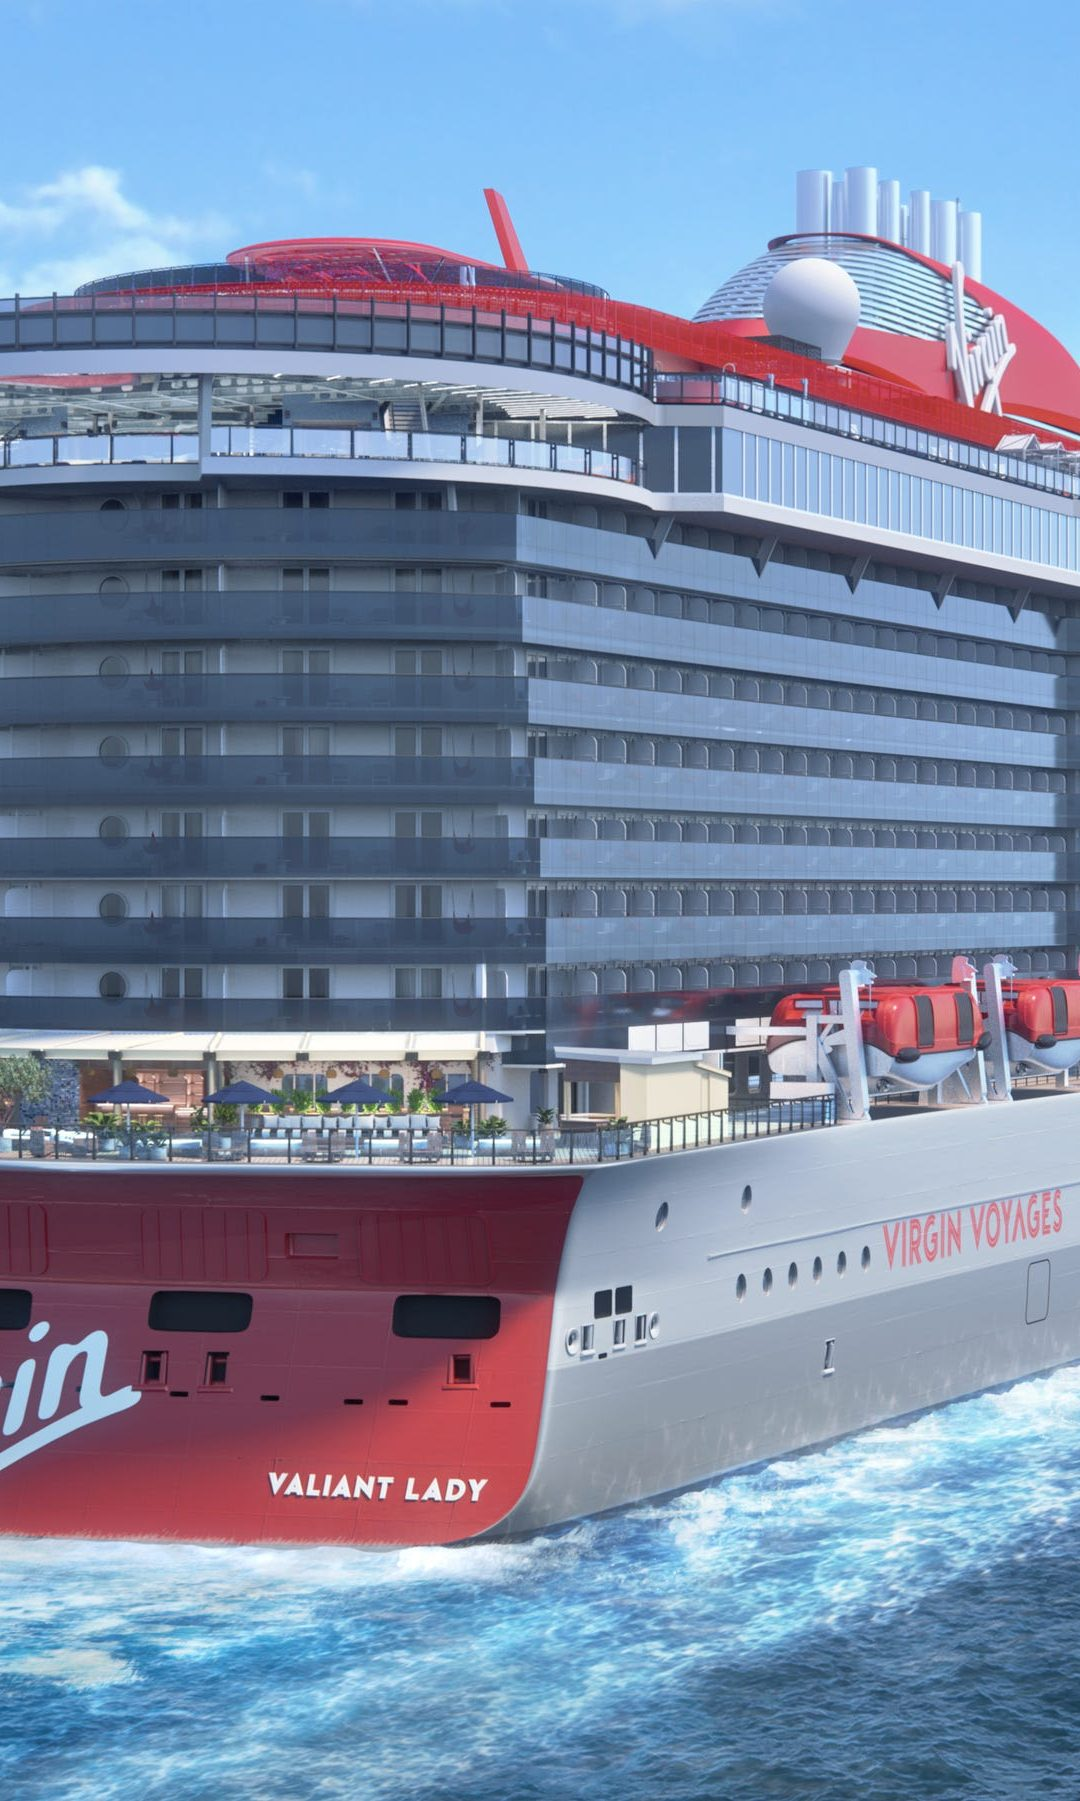 Virgin Voyages' Valiant Lady to debut in the UK in 2022